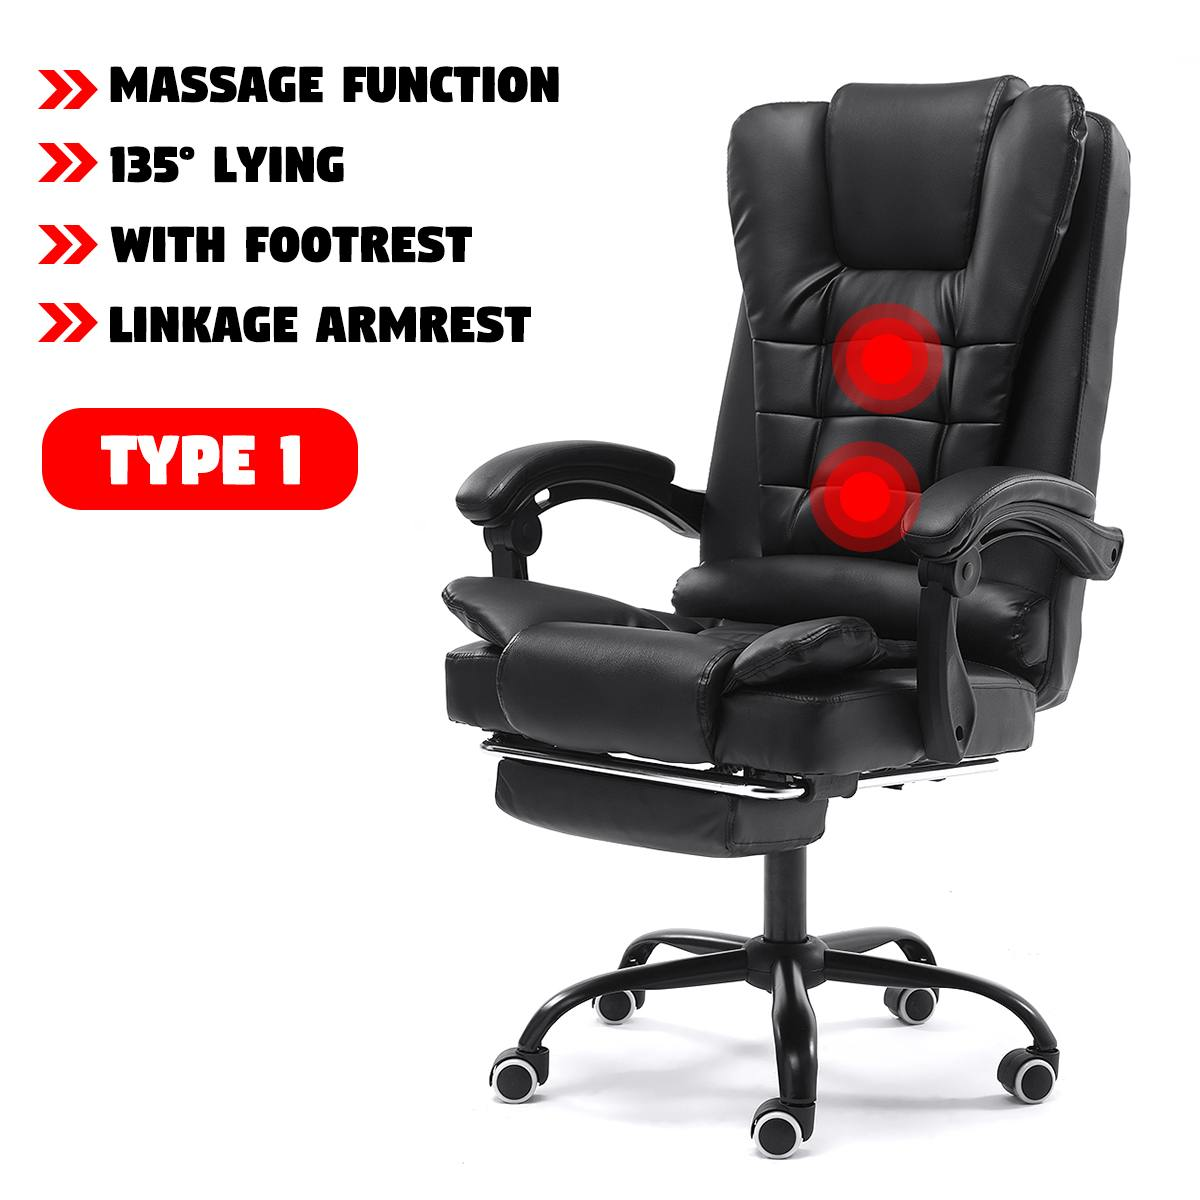 Hbe63d7e5241e46f0bb86fd900ccf2c3bu - WCG Gaming Chair Computer Armchair Office Chairs Home Swivel Massage Chair Lifting Adjustable Desk Chair Lying Recliner Chair